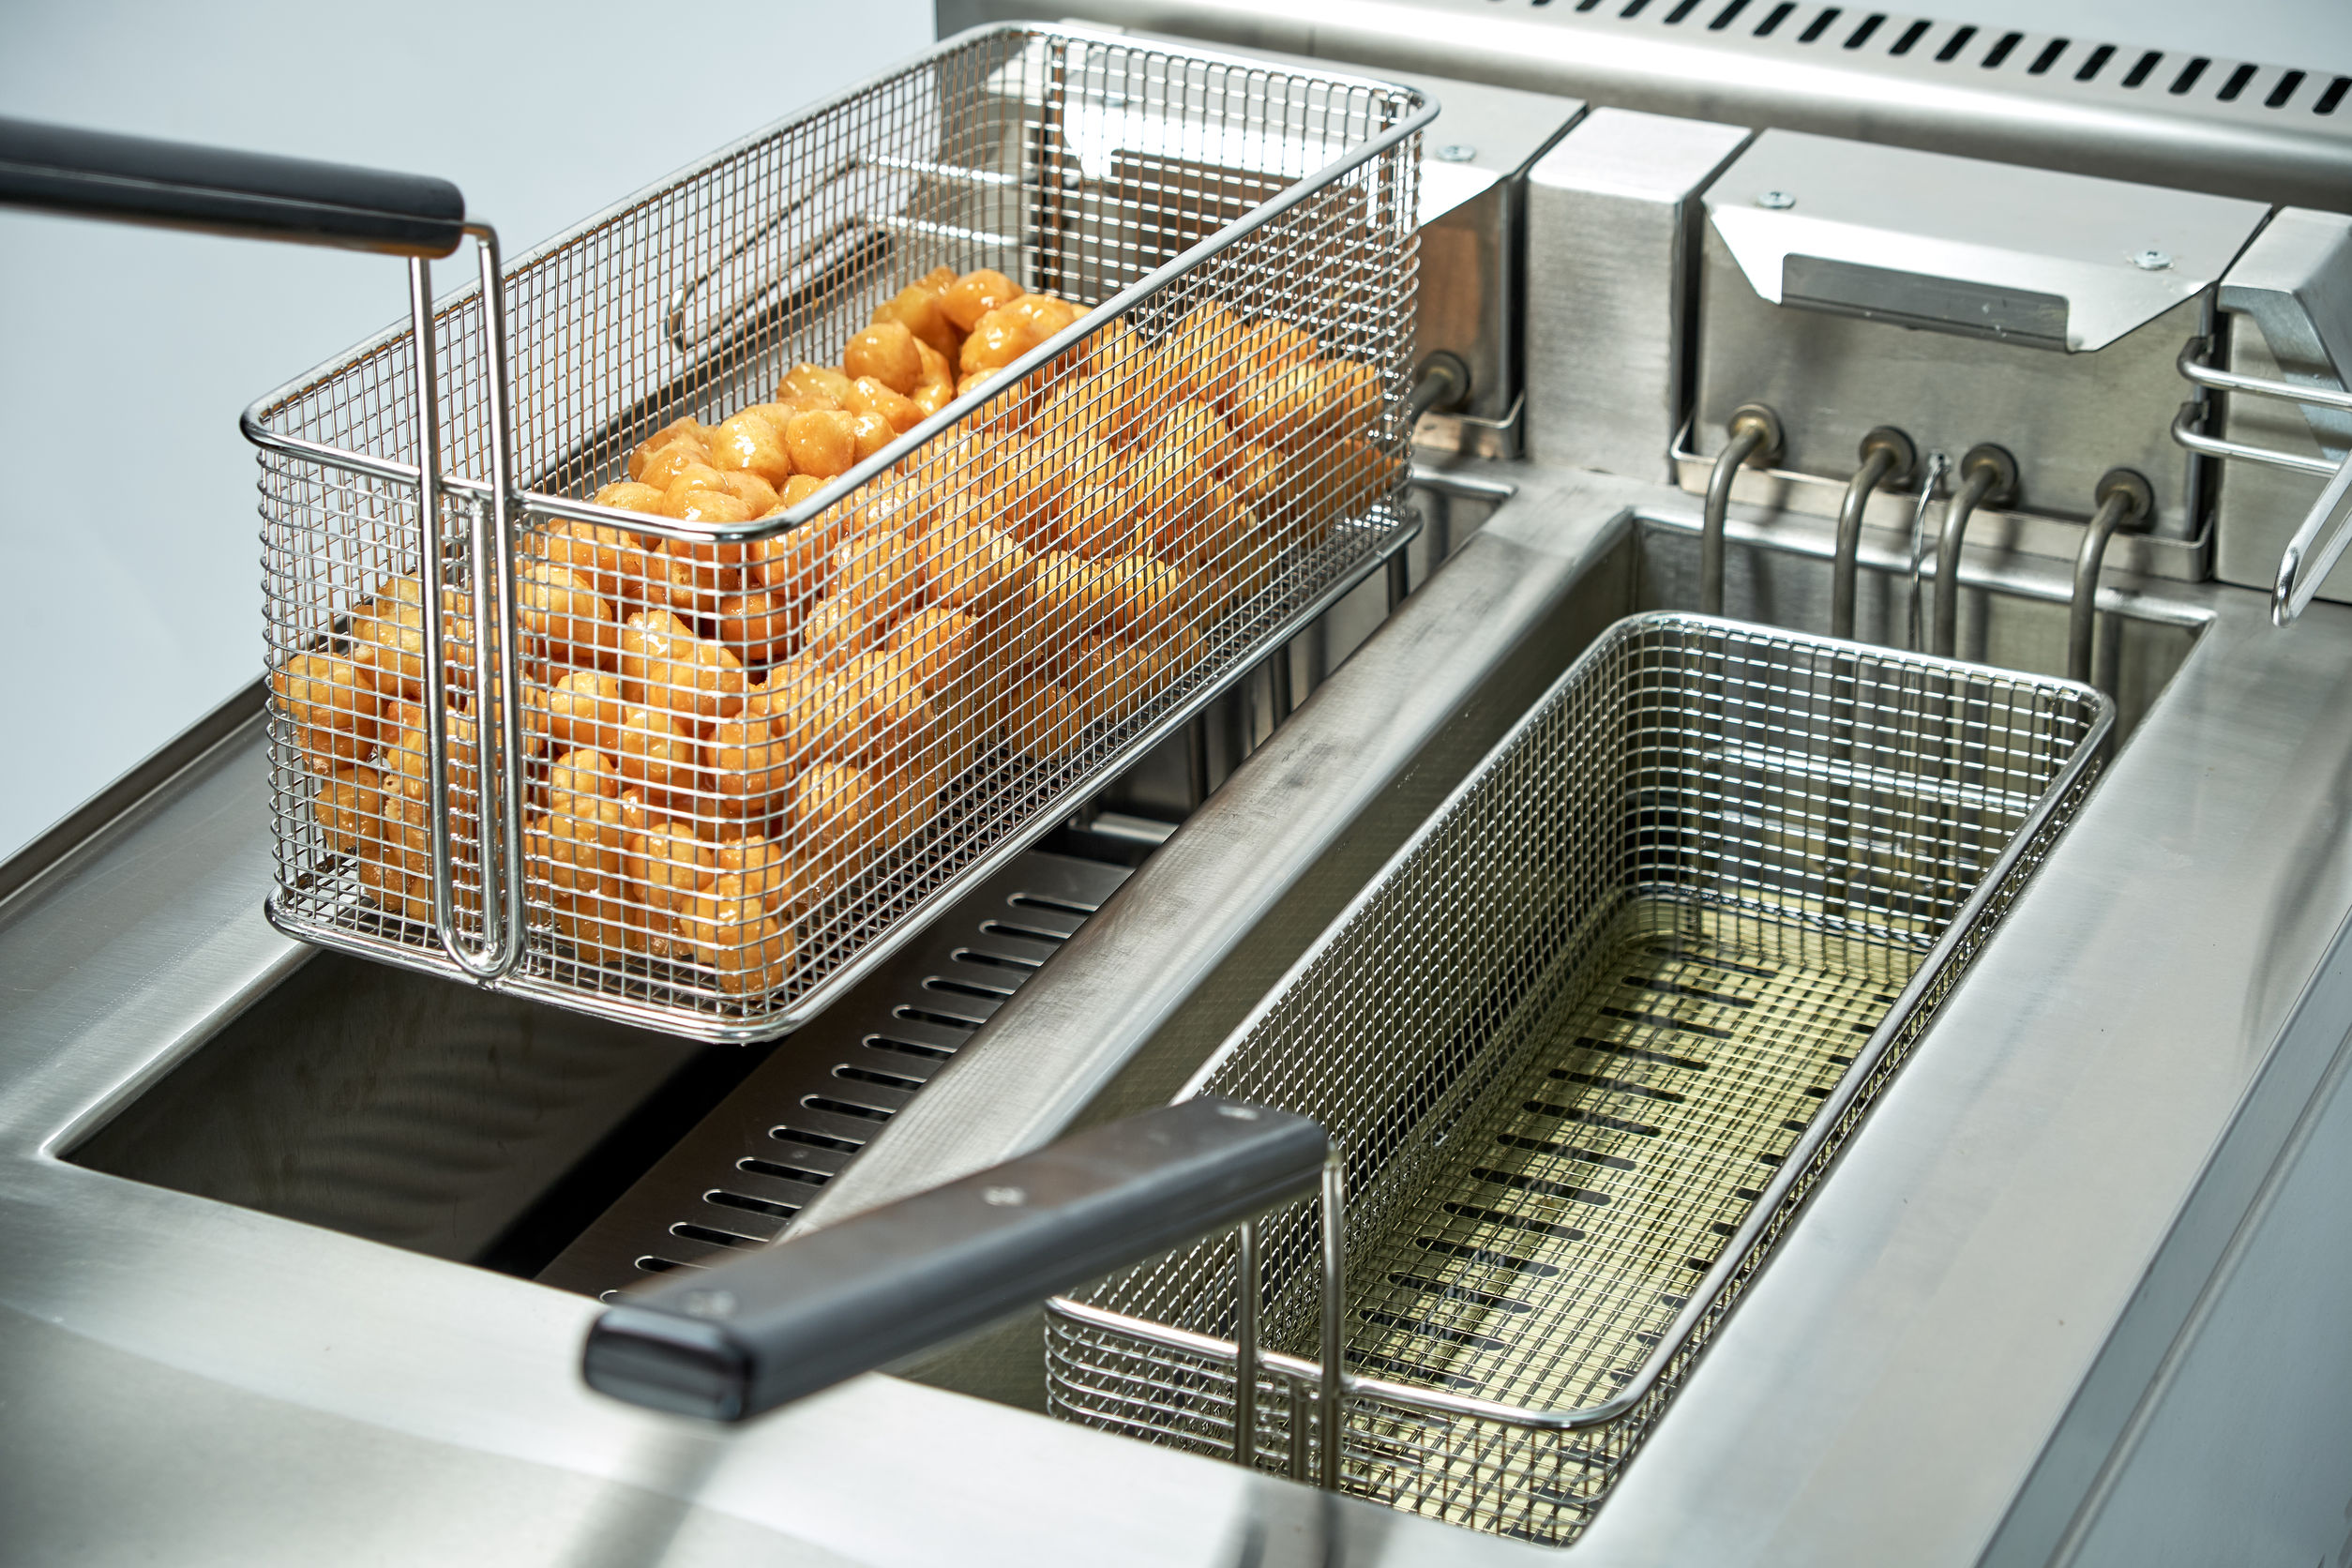 Industrial Deep Fat Catering chain. Professional kitchen equipment